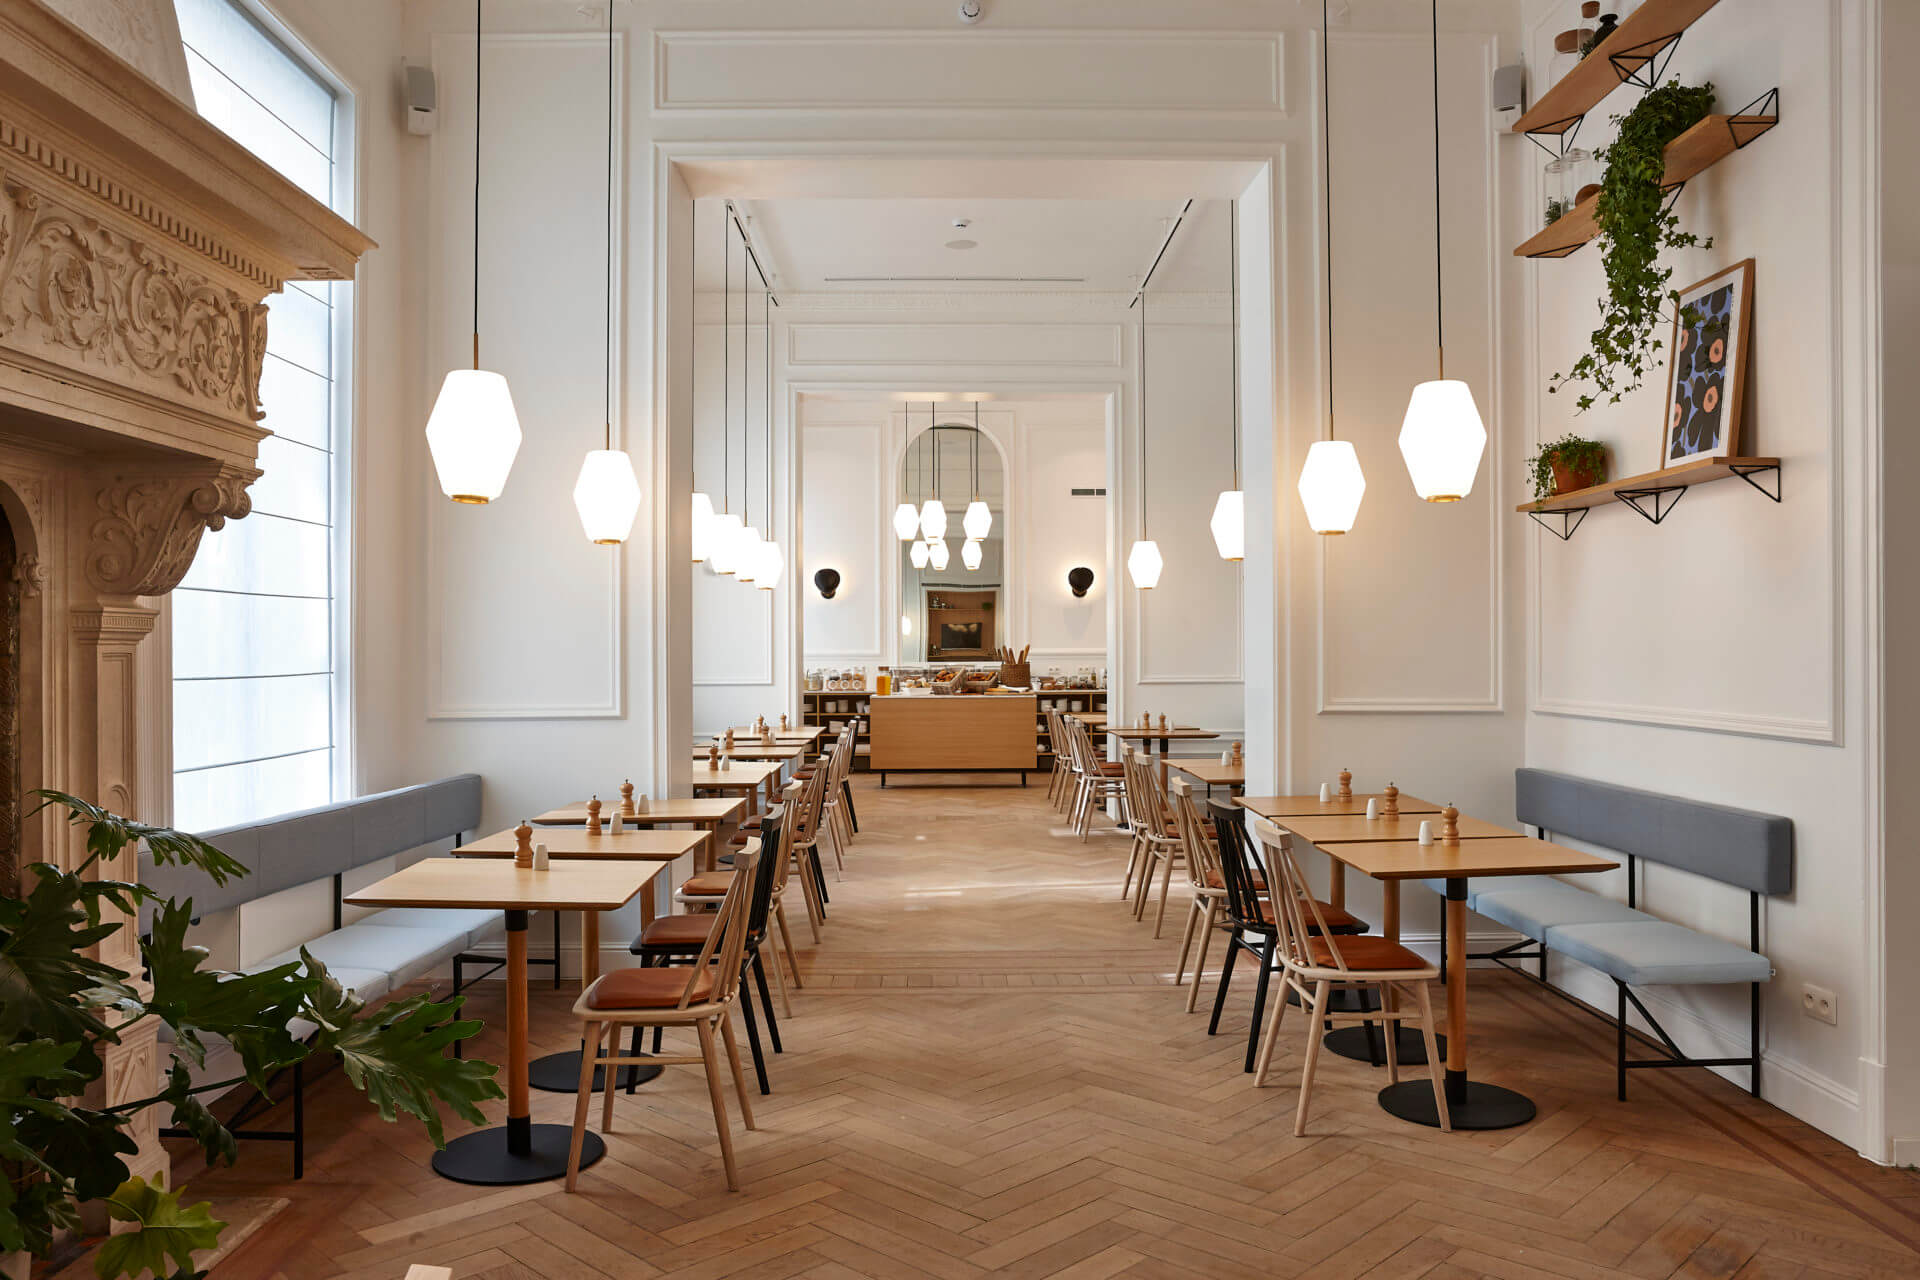 Phicap Hotel Hygge